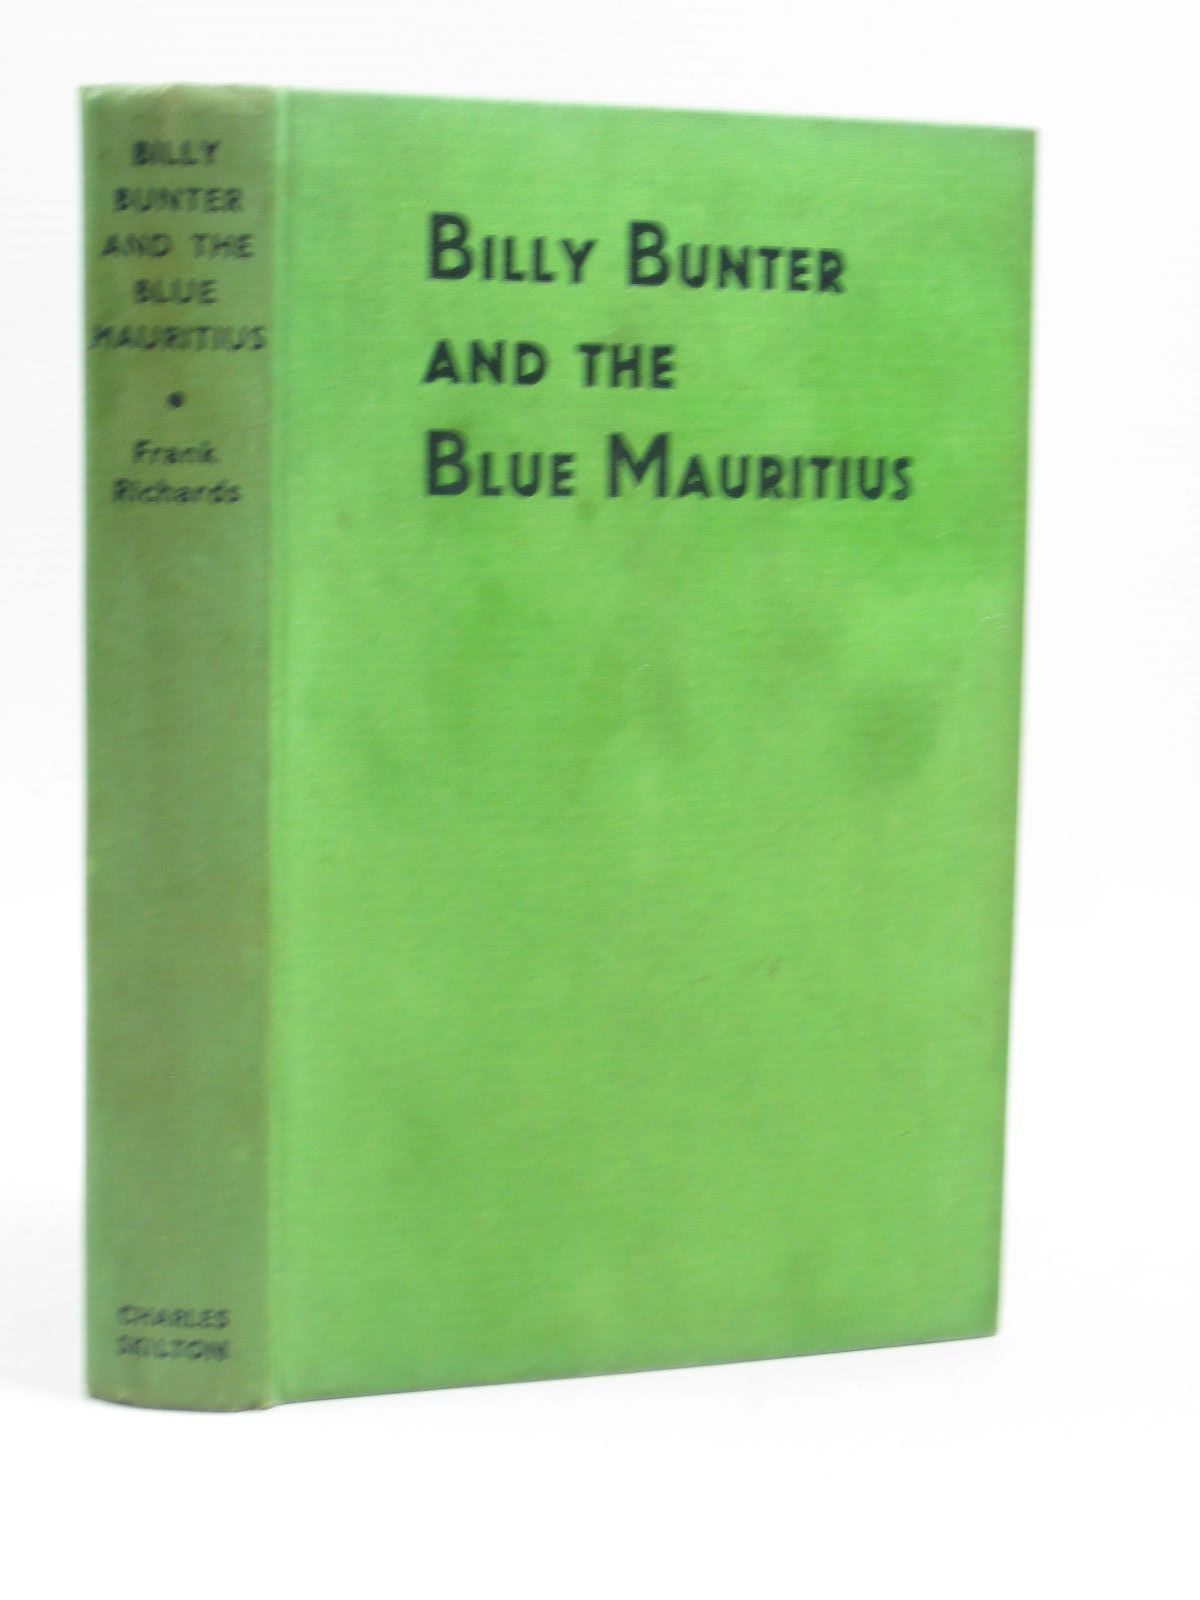 Photo of BILLY BUNTER AND THE BLUE MAURITIUS